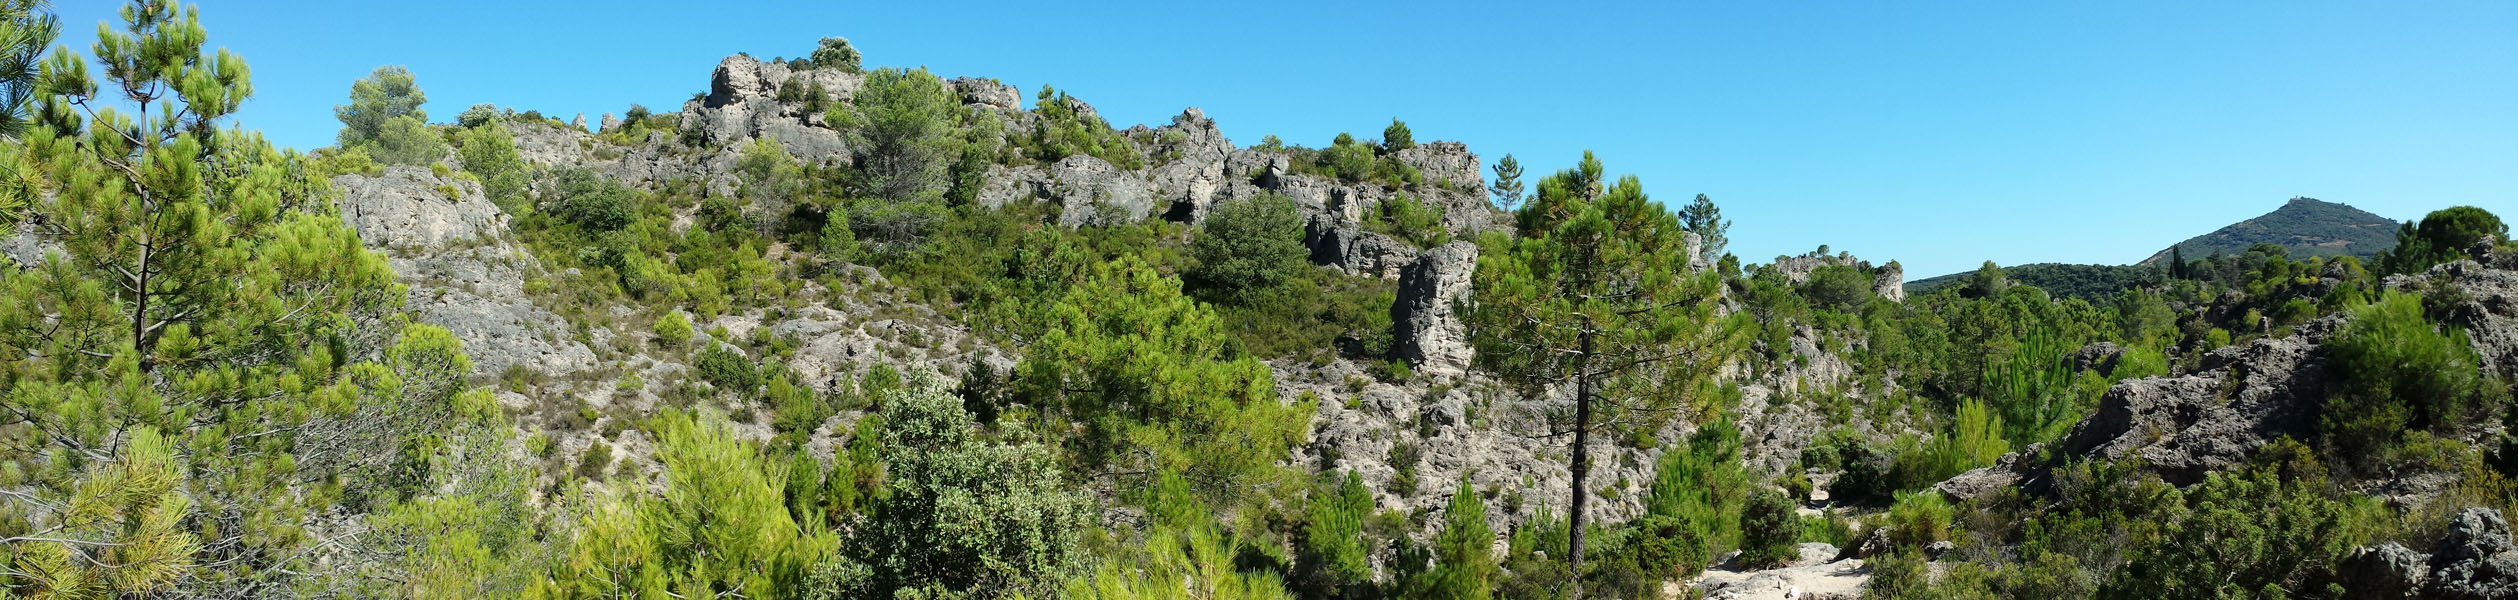 Panoramic view of Cirque de Moureze, Languedoc